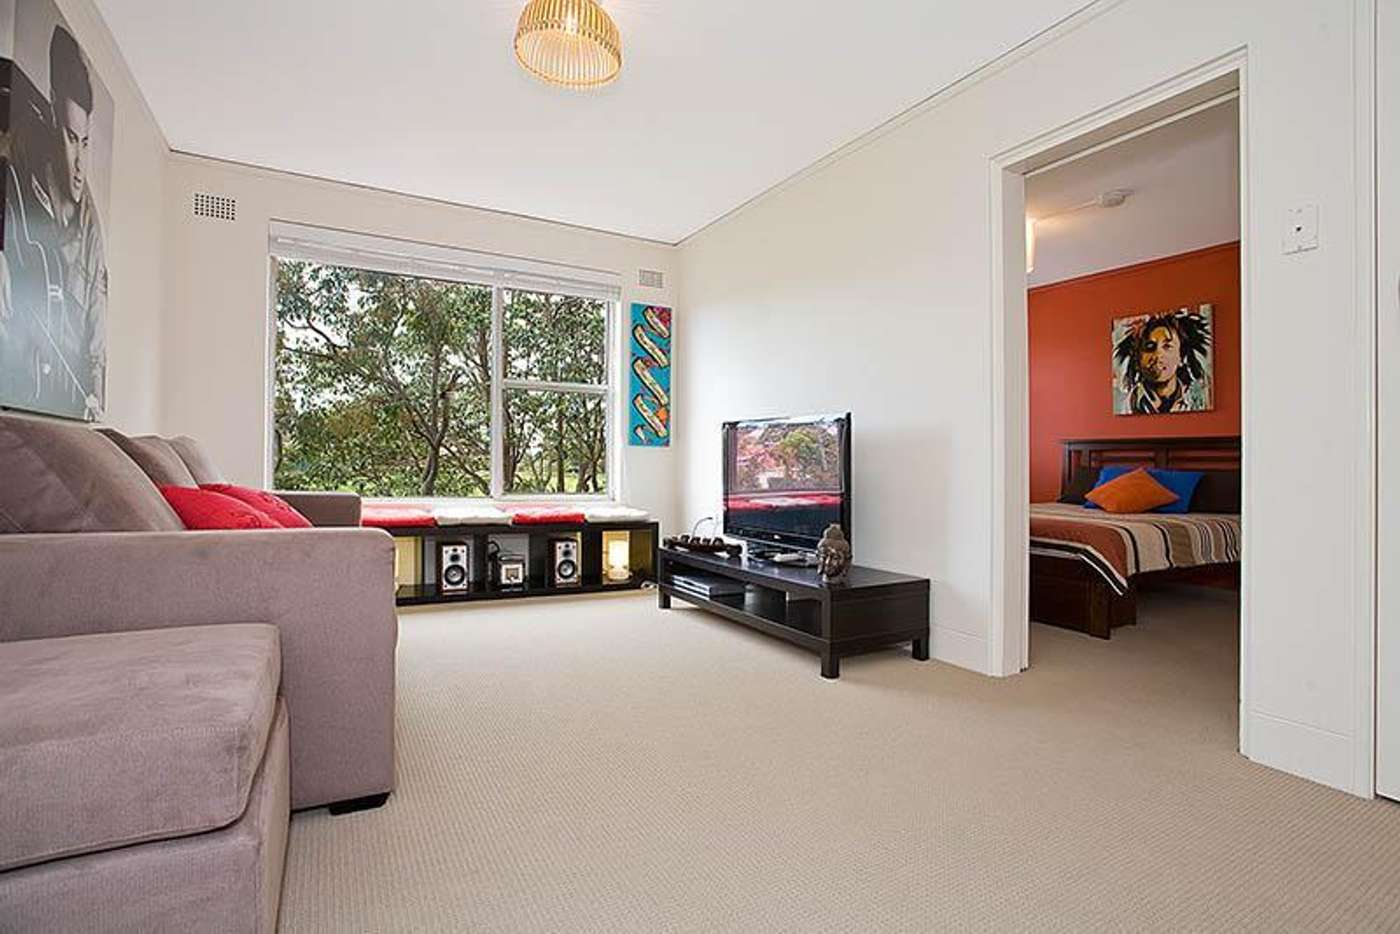 Main view of Homely unit listing, 13/53 Caronia Avenue, Cronulla NSW 2230